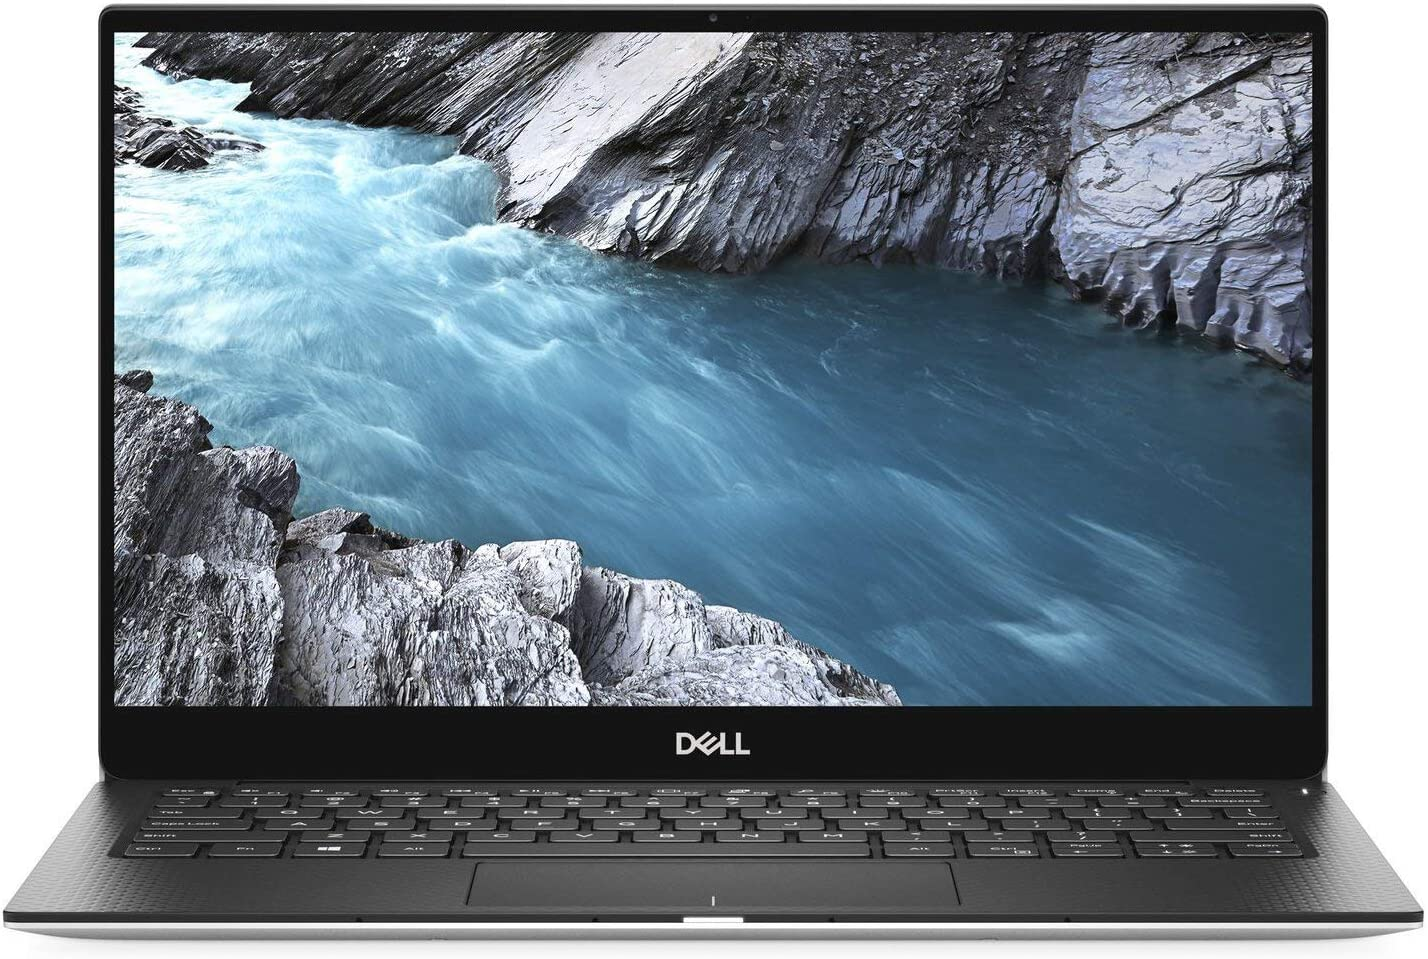 Dell New 2019 XPS i7 Touch Screen Laptop with USB C Port